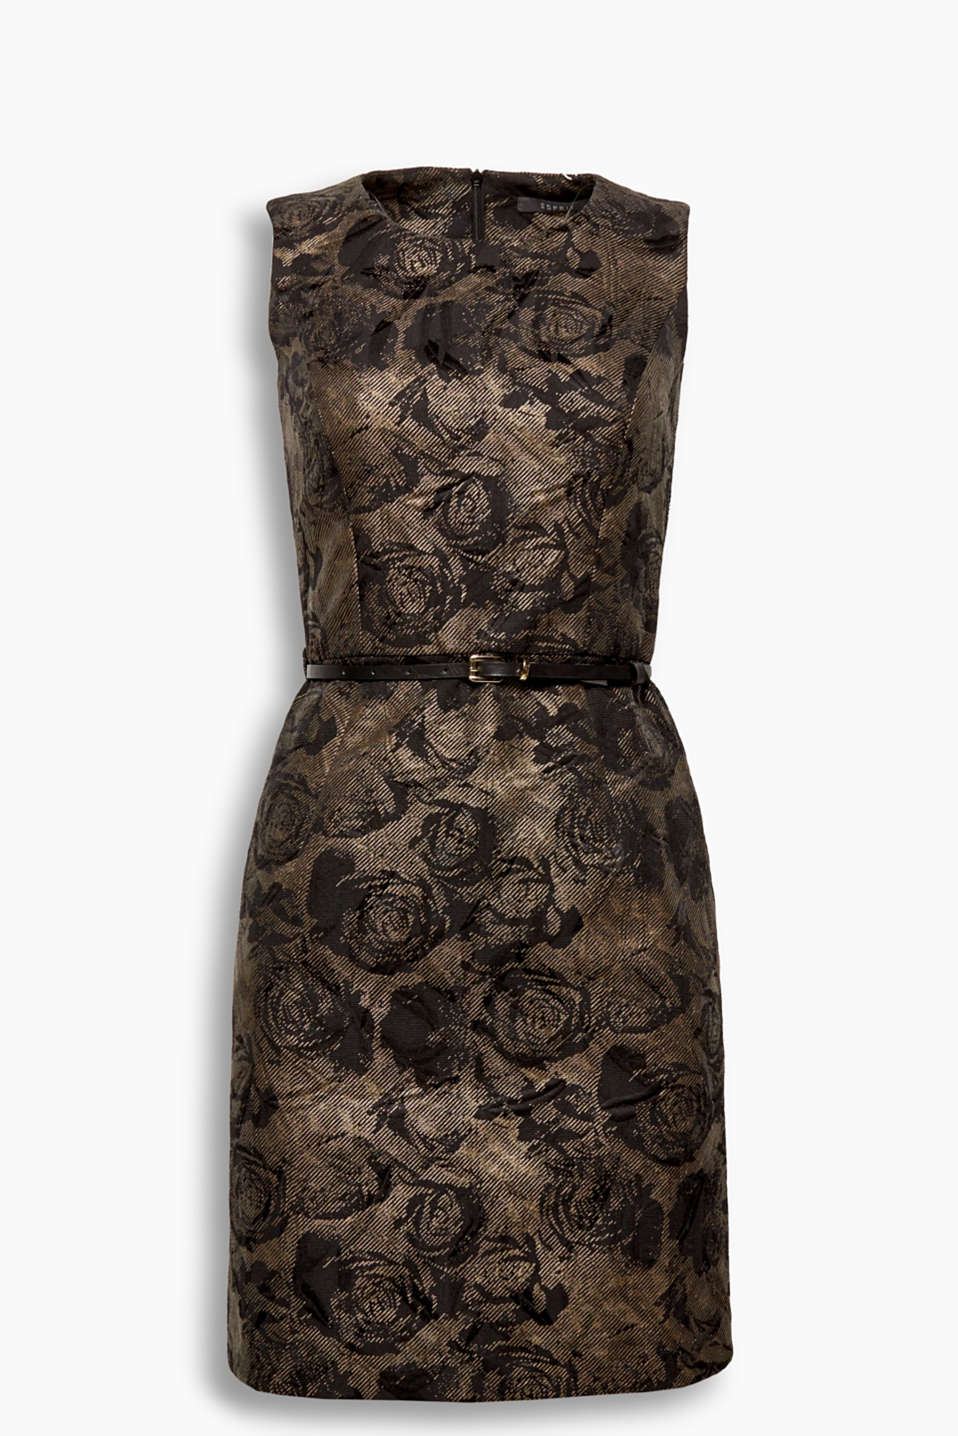 This finely textured shift dress featuring a narrow belt is graced with jacquard flowers and an innovative sheen!